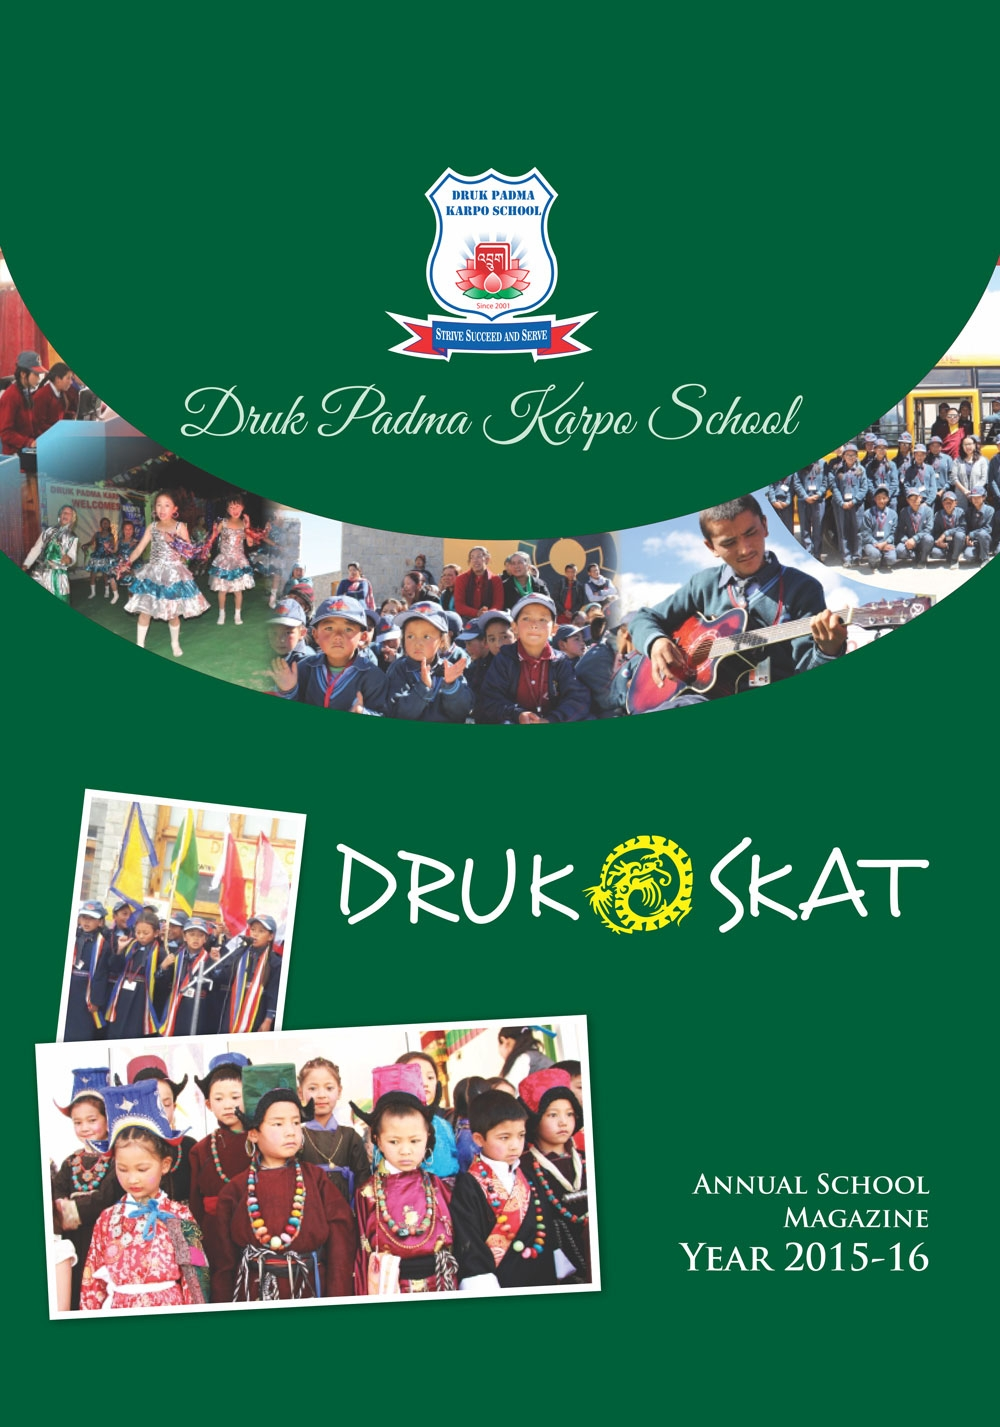 Drukskat issue 5 (2015-16)